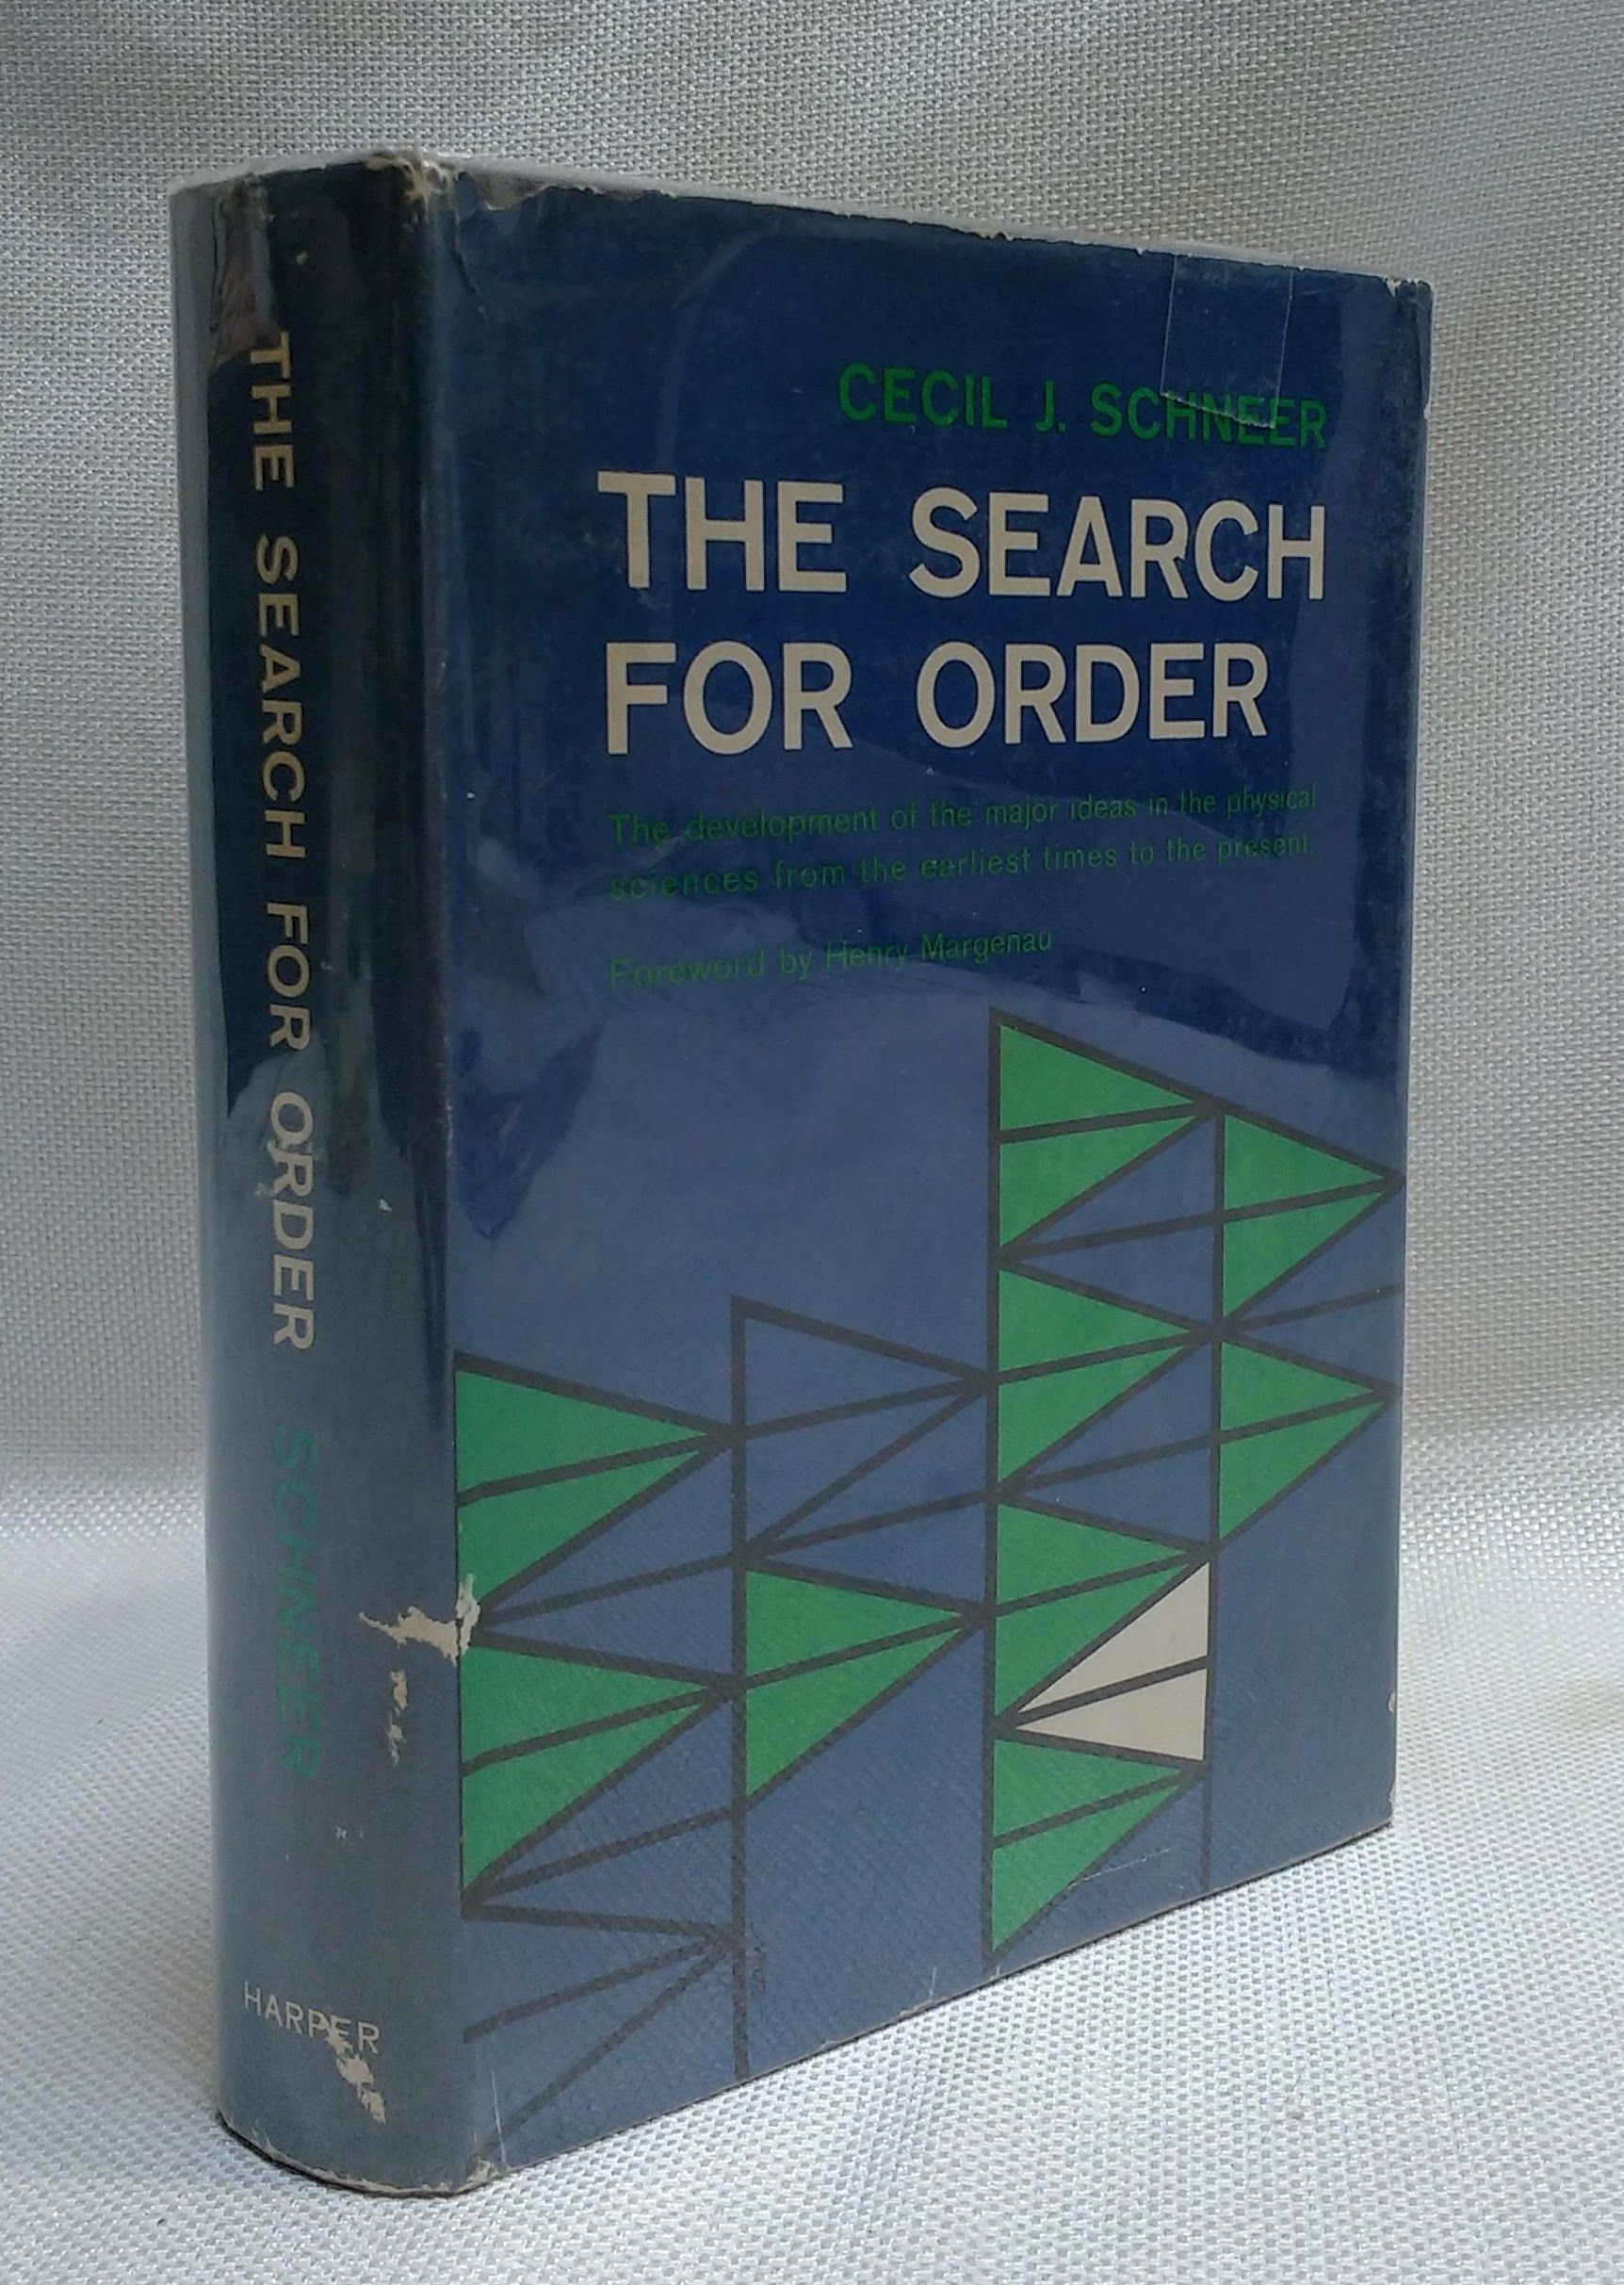 The search for order: The development of the major ideas in the physical sciences from the earliest times to the present, Schneer, Cecil J